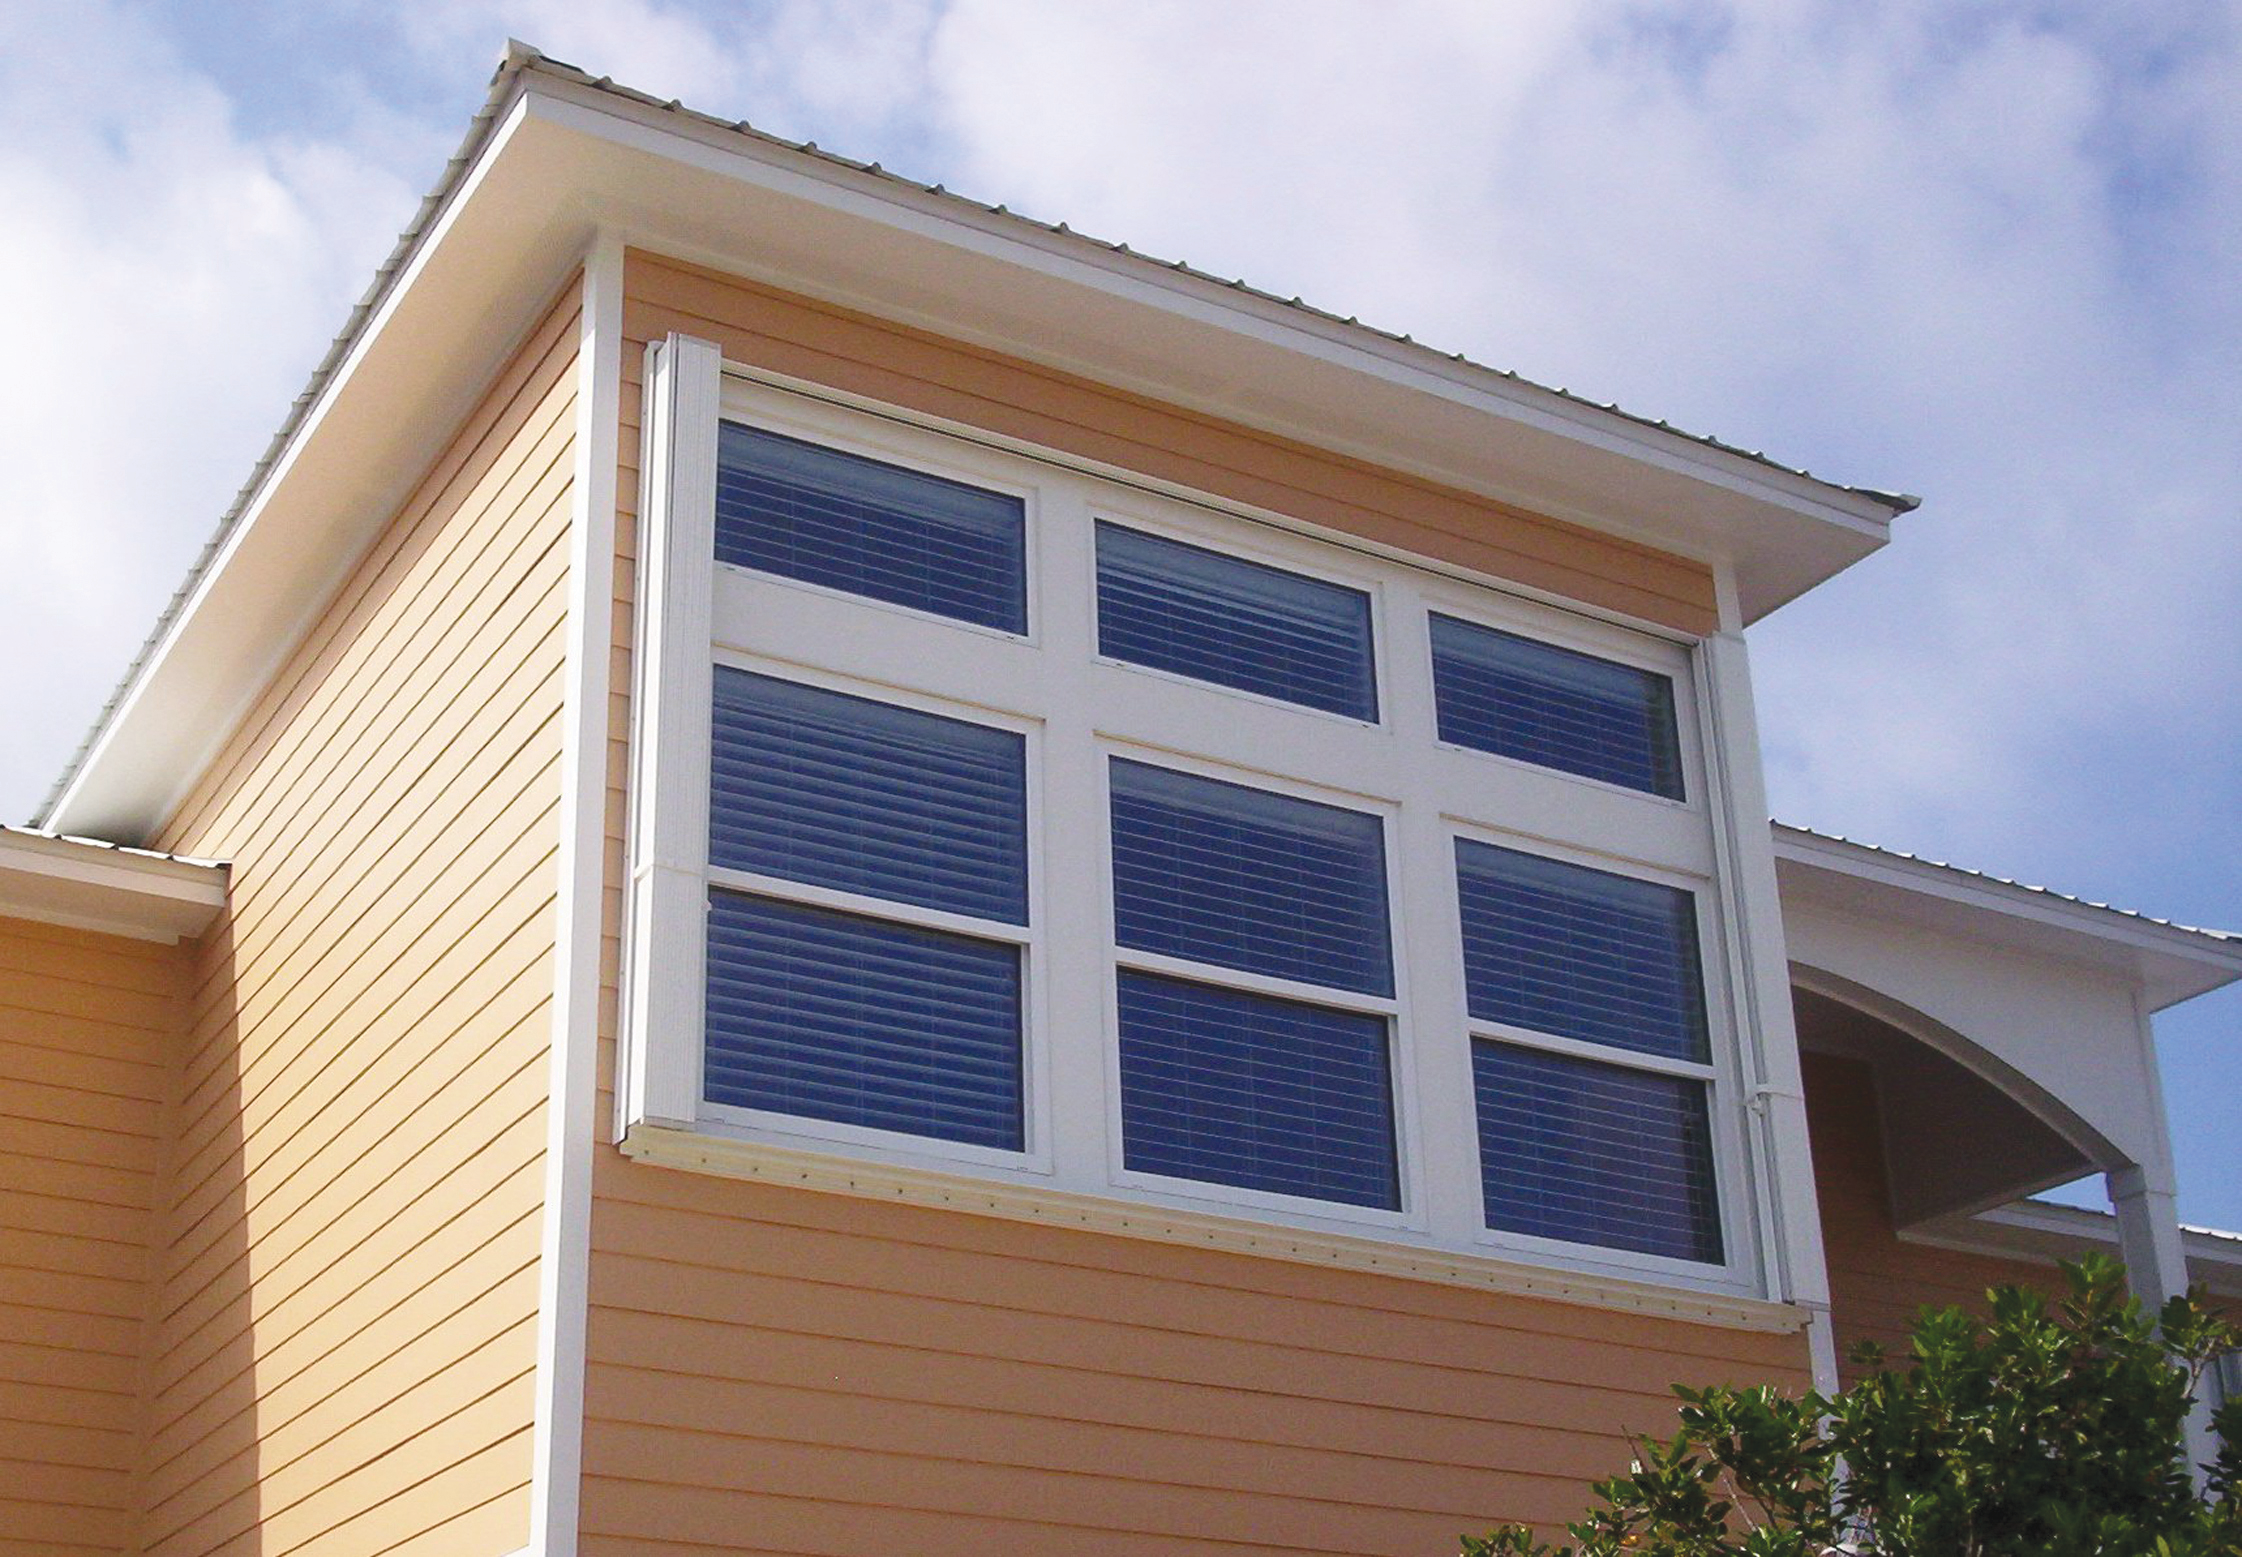 Figure 4-9. Accordion shutter (shown in open position) installed over a large window group of a coastal home. Shutter has been installed to allow deployment from inside the home.  Source: Roll-a-way/QMI.